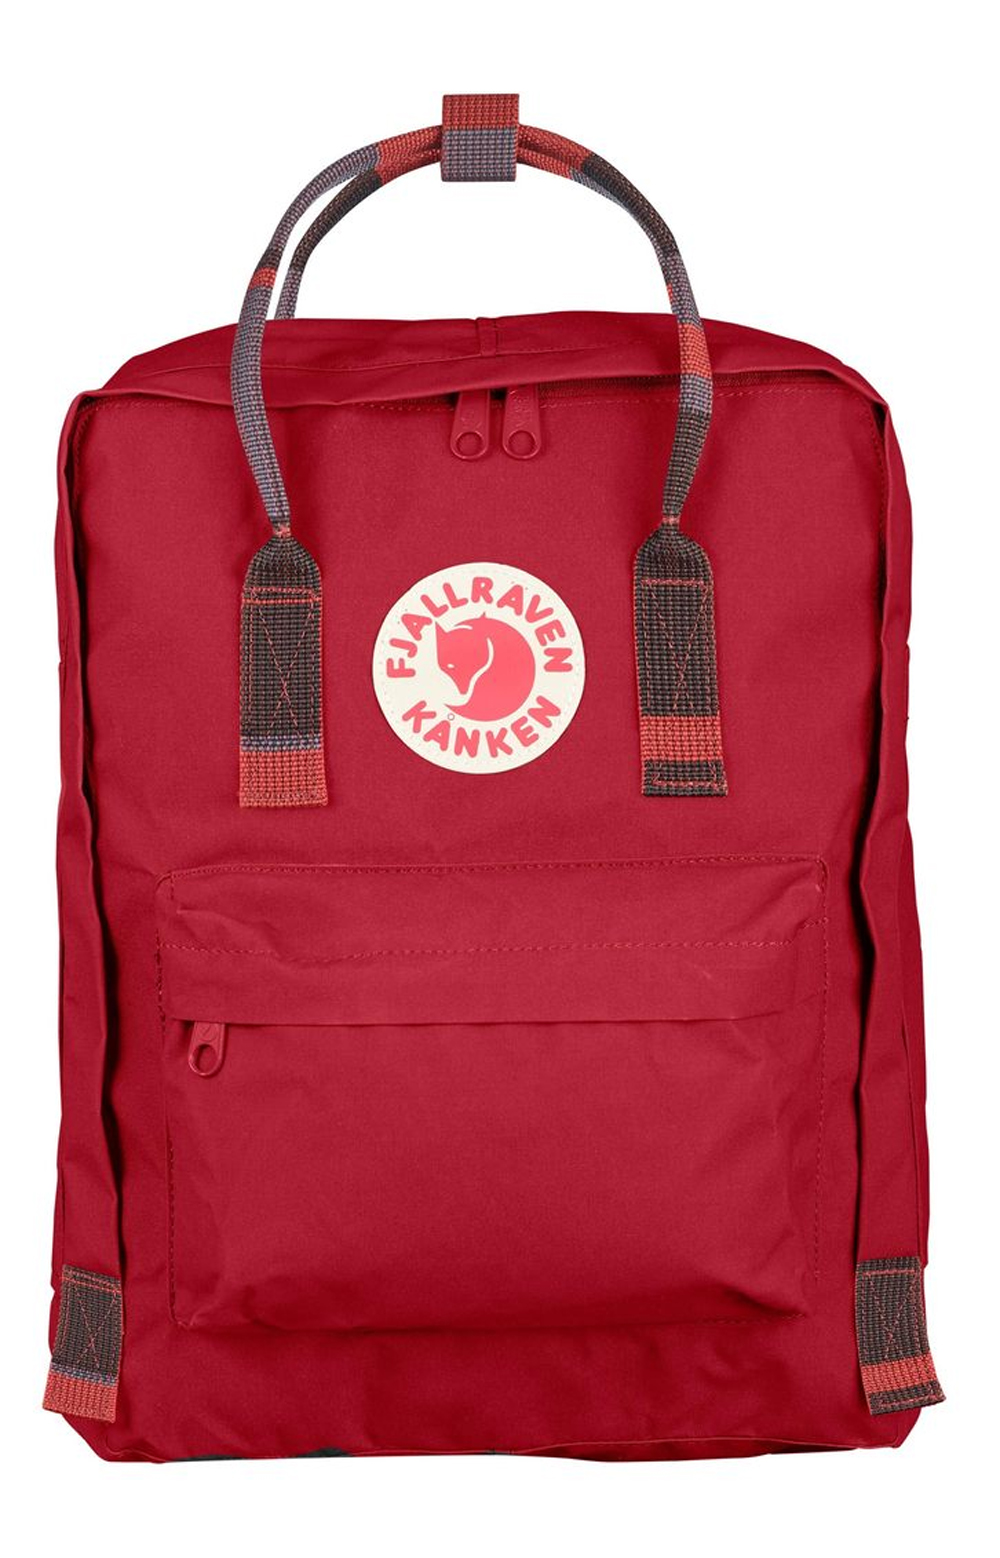 Kanken Backpack - Deep Red/Random Blocked